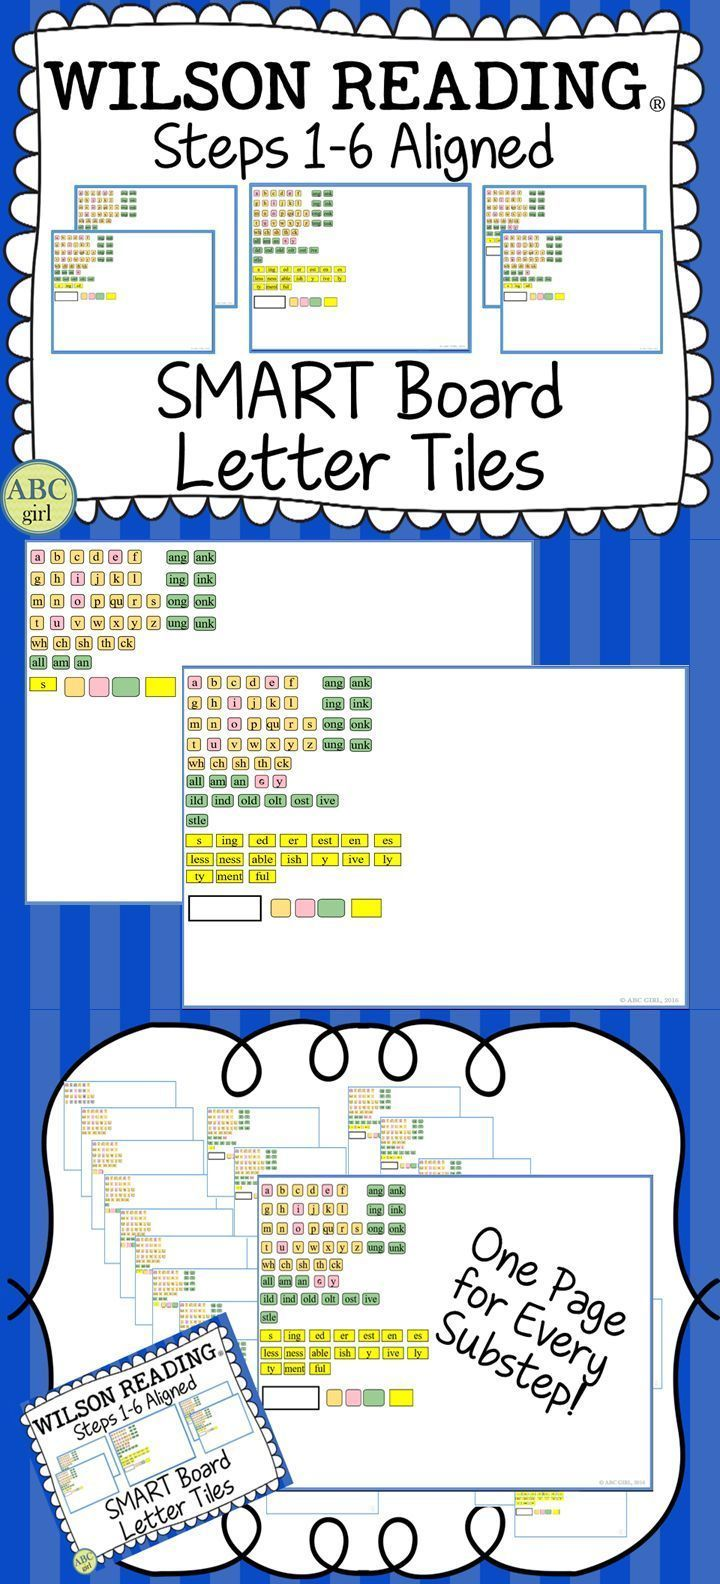 worksheet Wilson Reading Worksheets 27 best wilson reading system images on pinterest learning school steps 1 6 aligned smart board letter tiles never run